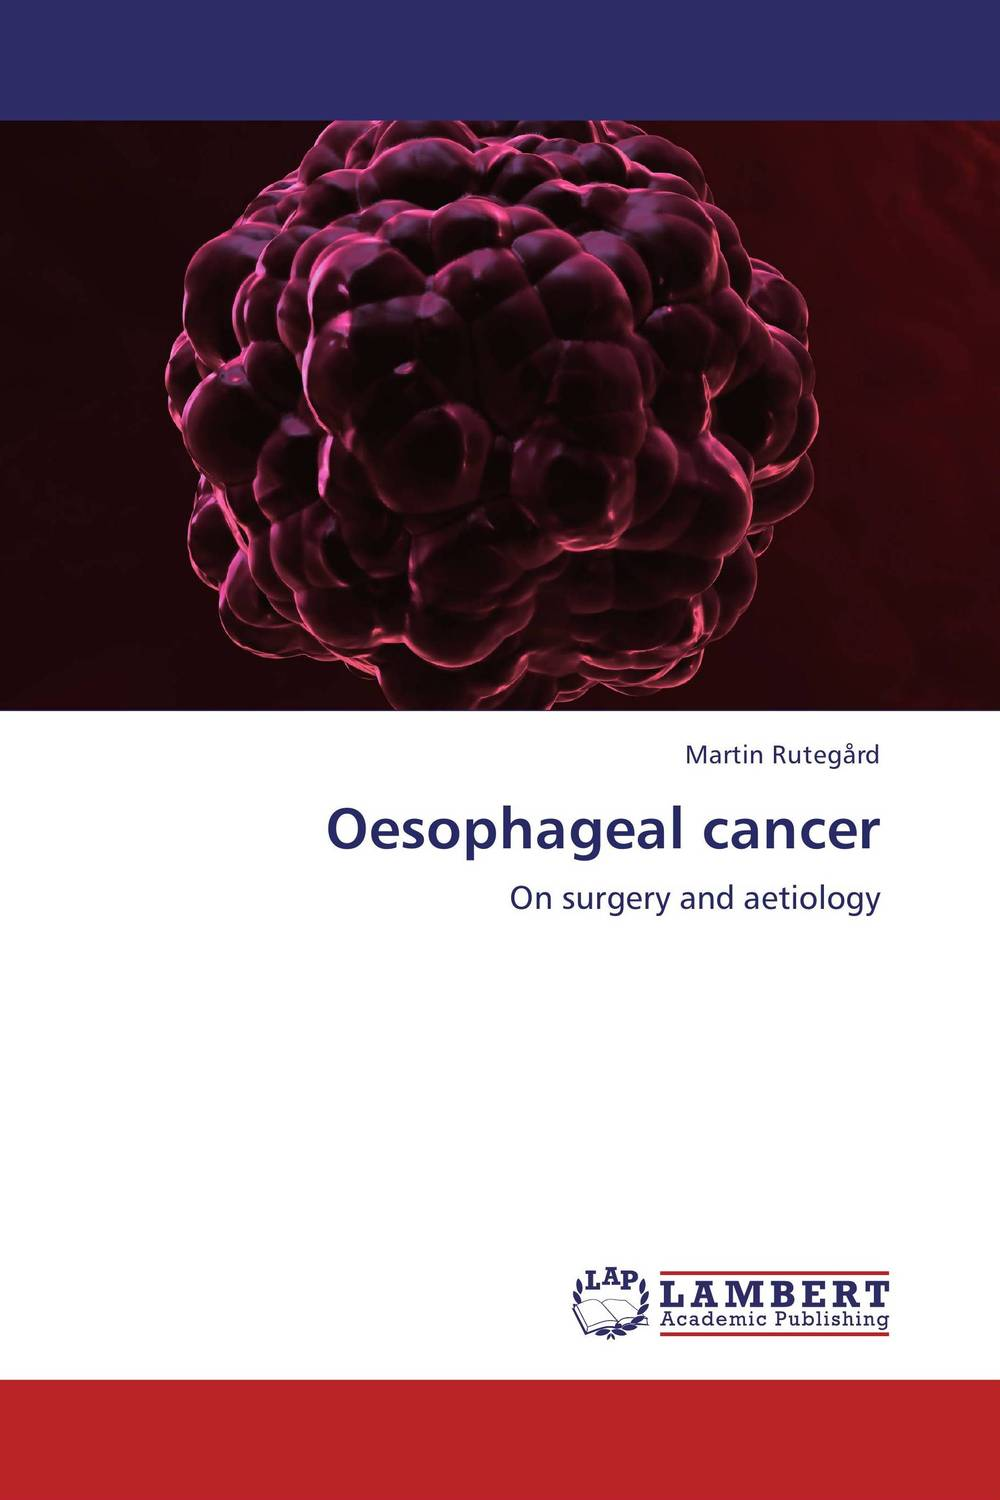 Фото Oesophageal cancer cervical cancer in amhara region in ethiopia